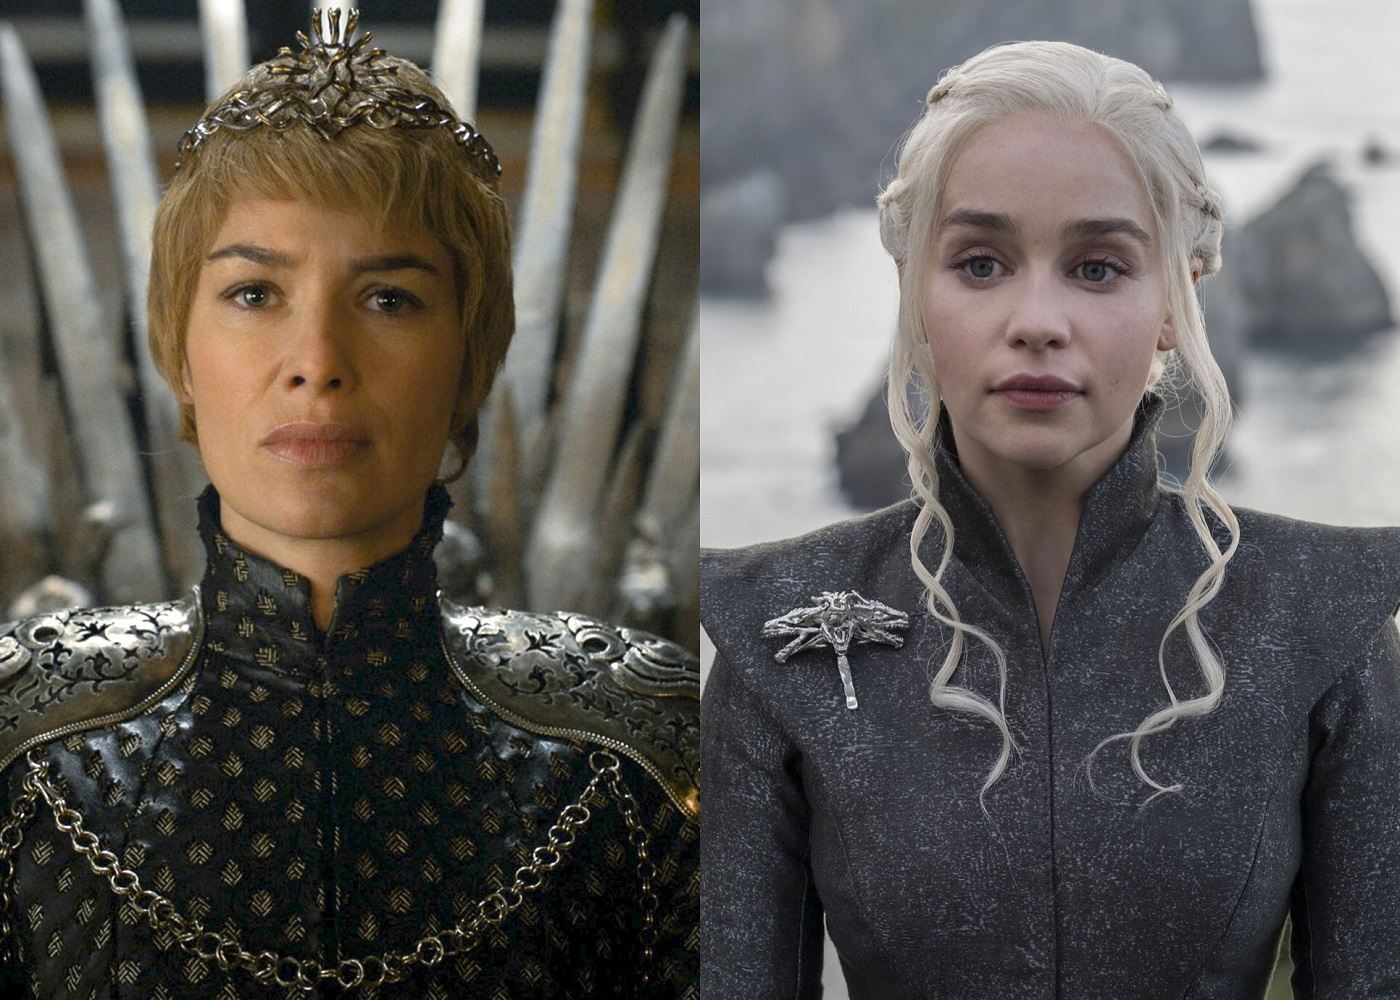 Cersei Lannister and Daenerys Targaryen Game of Thrones